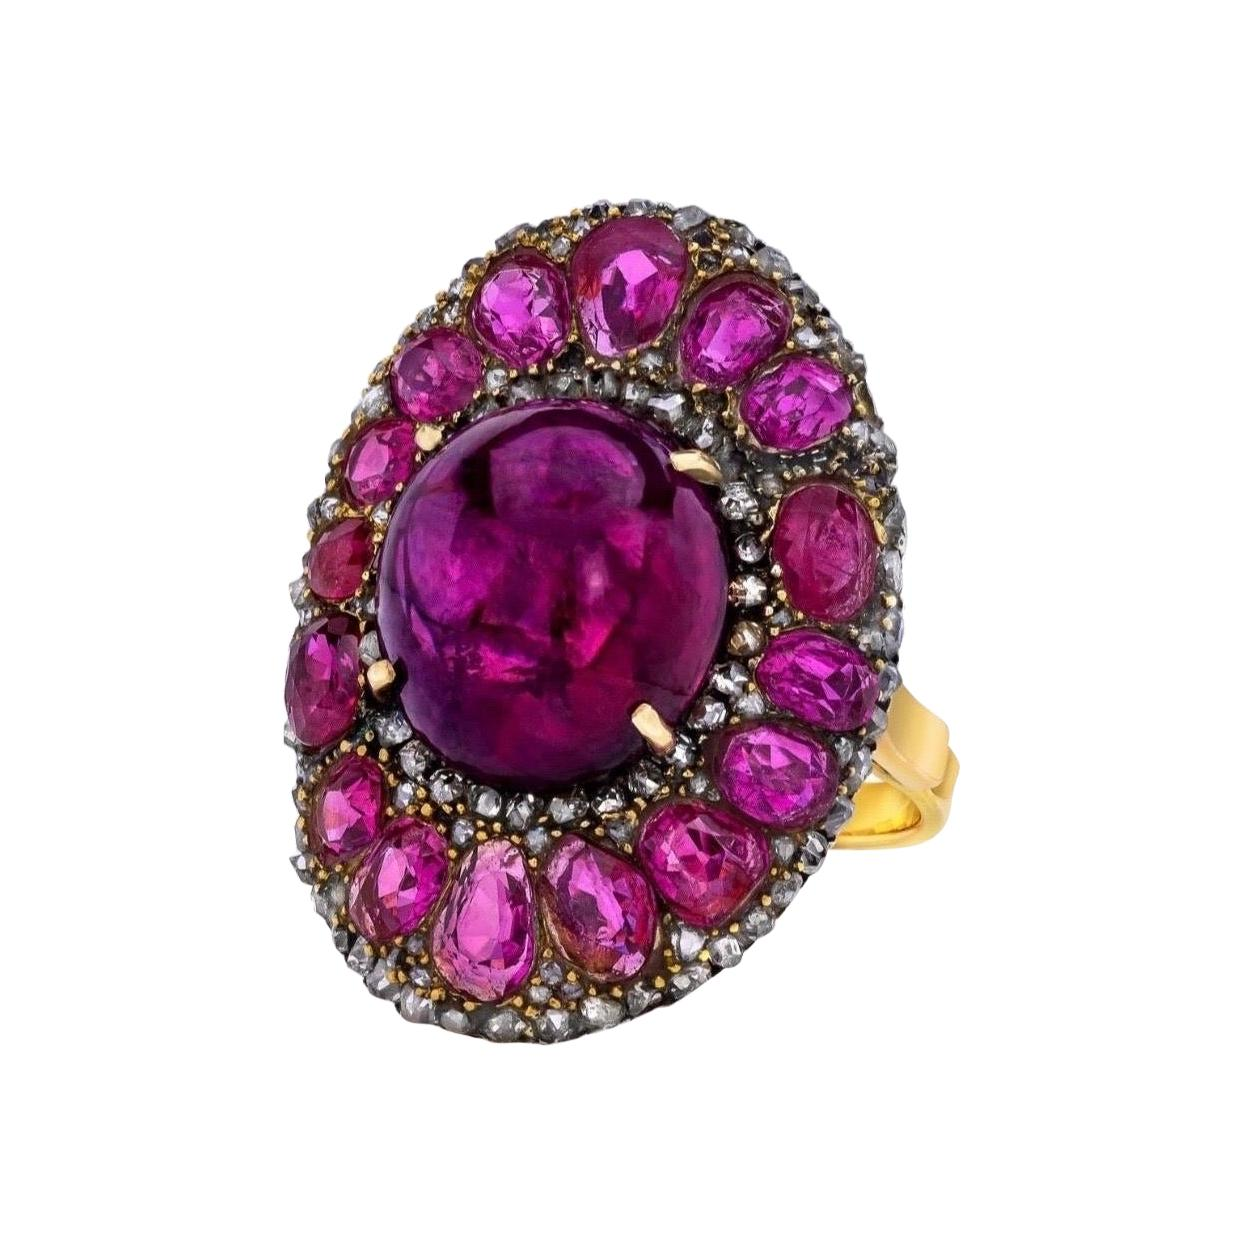 GIA Certified Unheated 15.57 Carat Ruby and 6.25 CTW Unheated Pink Sapphire Ring